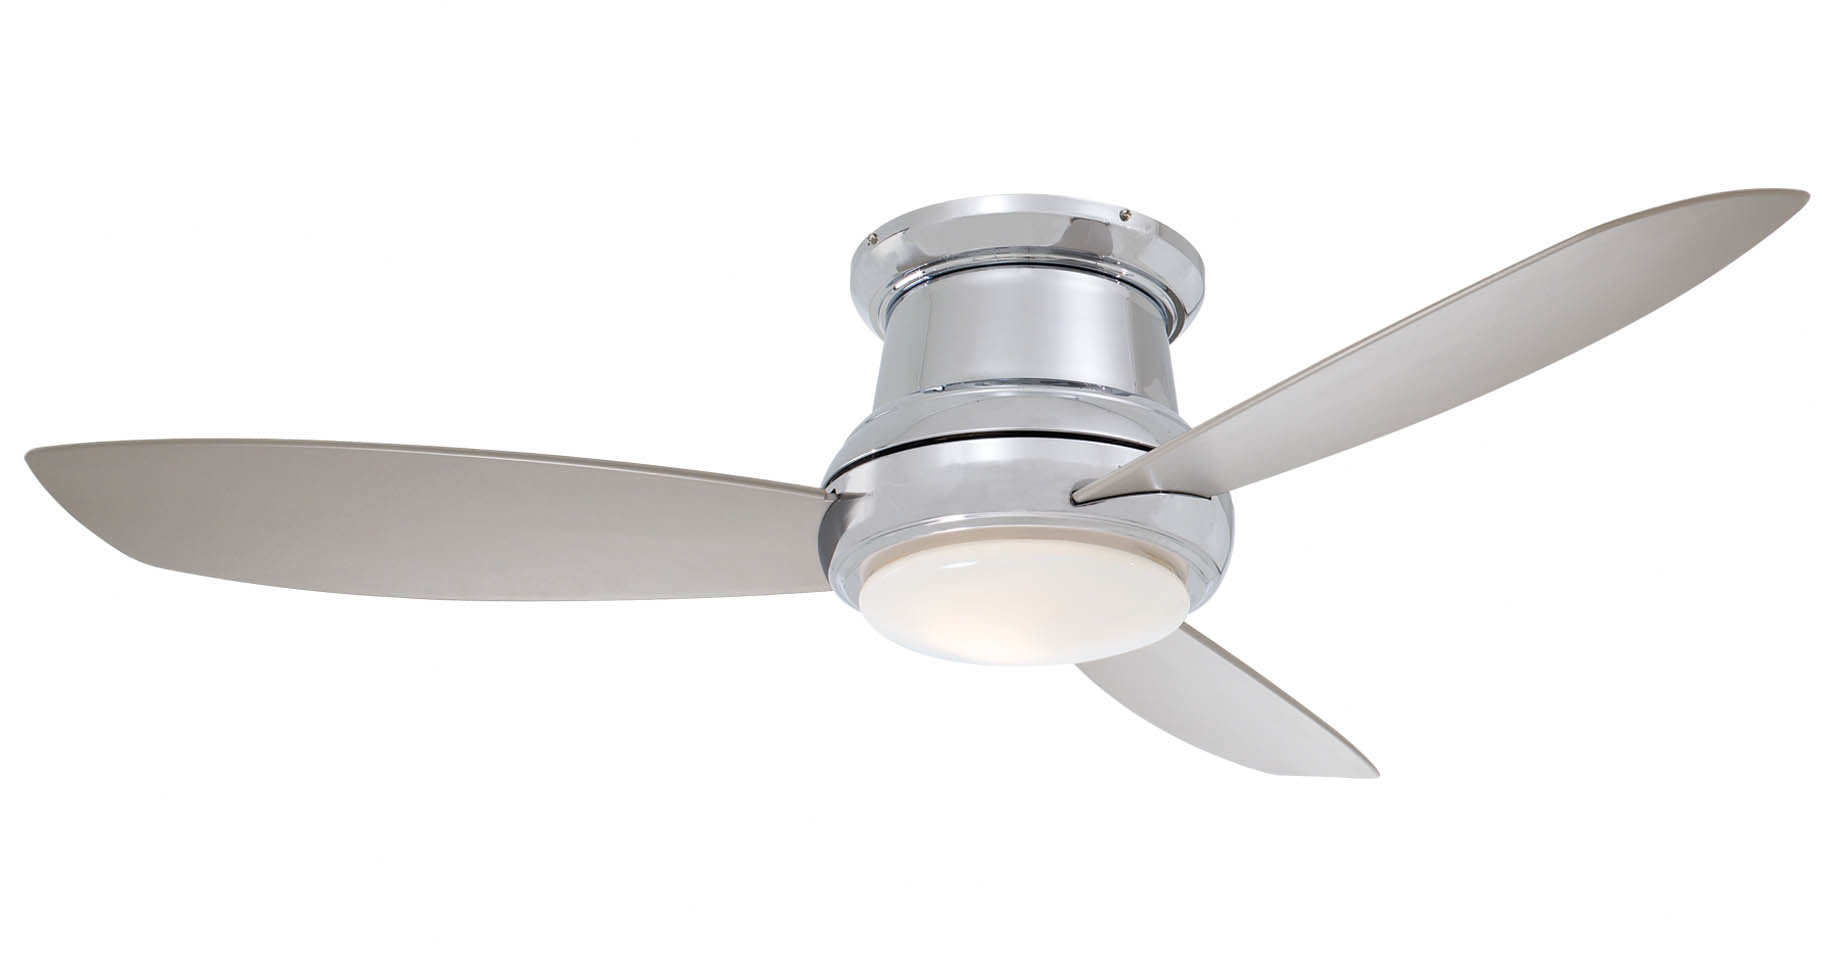 """44"""" Concept Ii 3 Blade Led Ceiling Fan Intended For Most Recent Concept Ii 3 Blade Ceiling Fans (View 2 of 20)"""